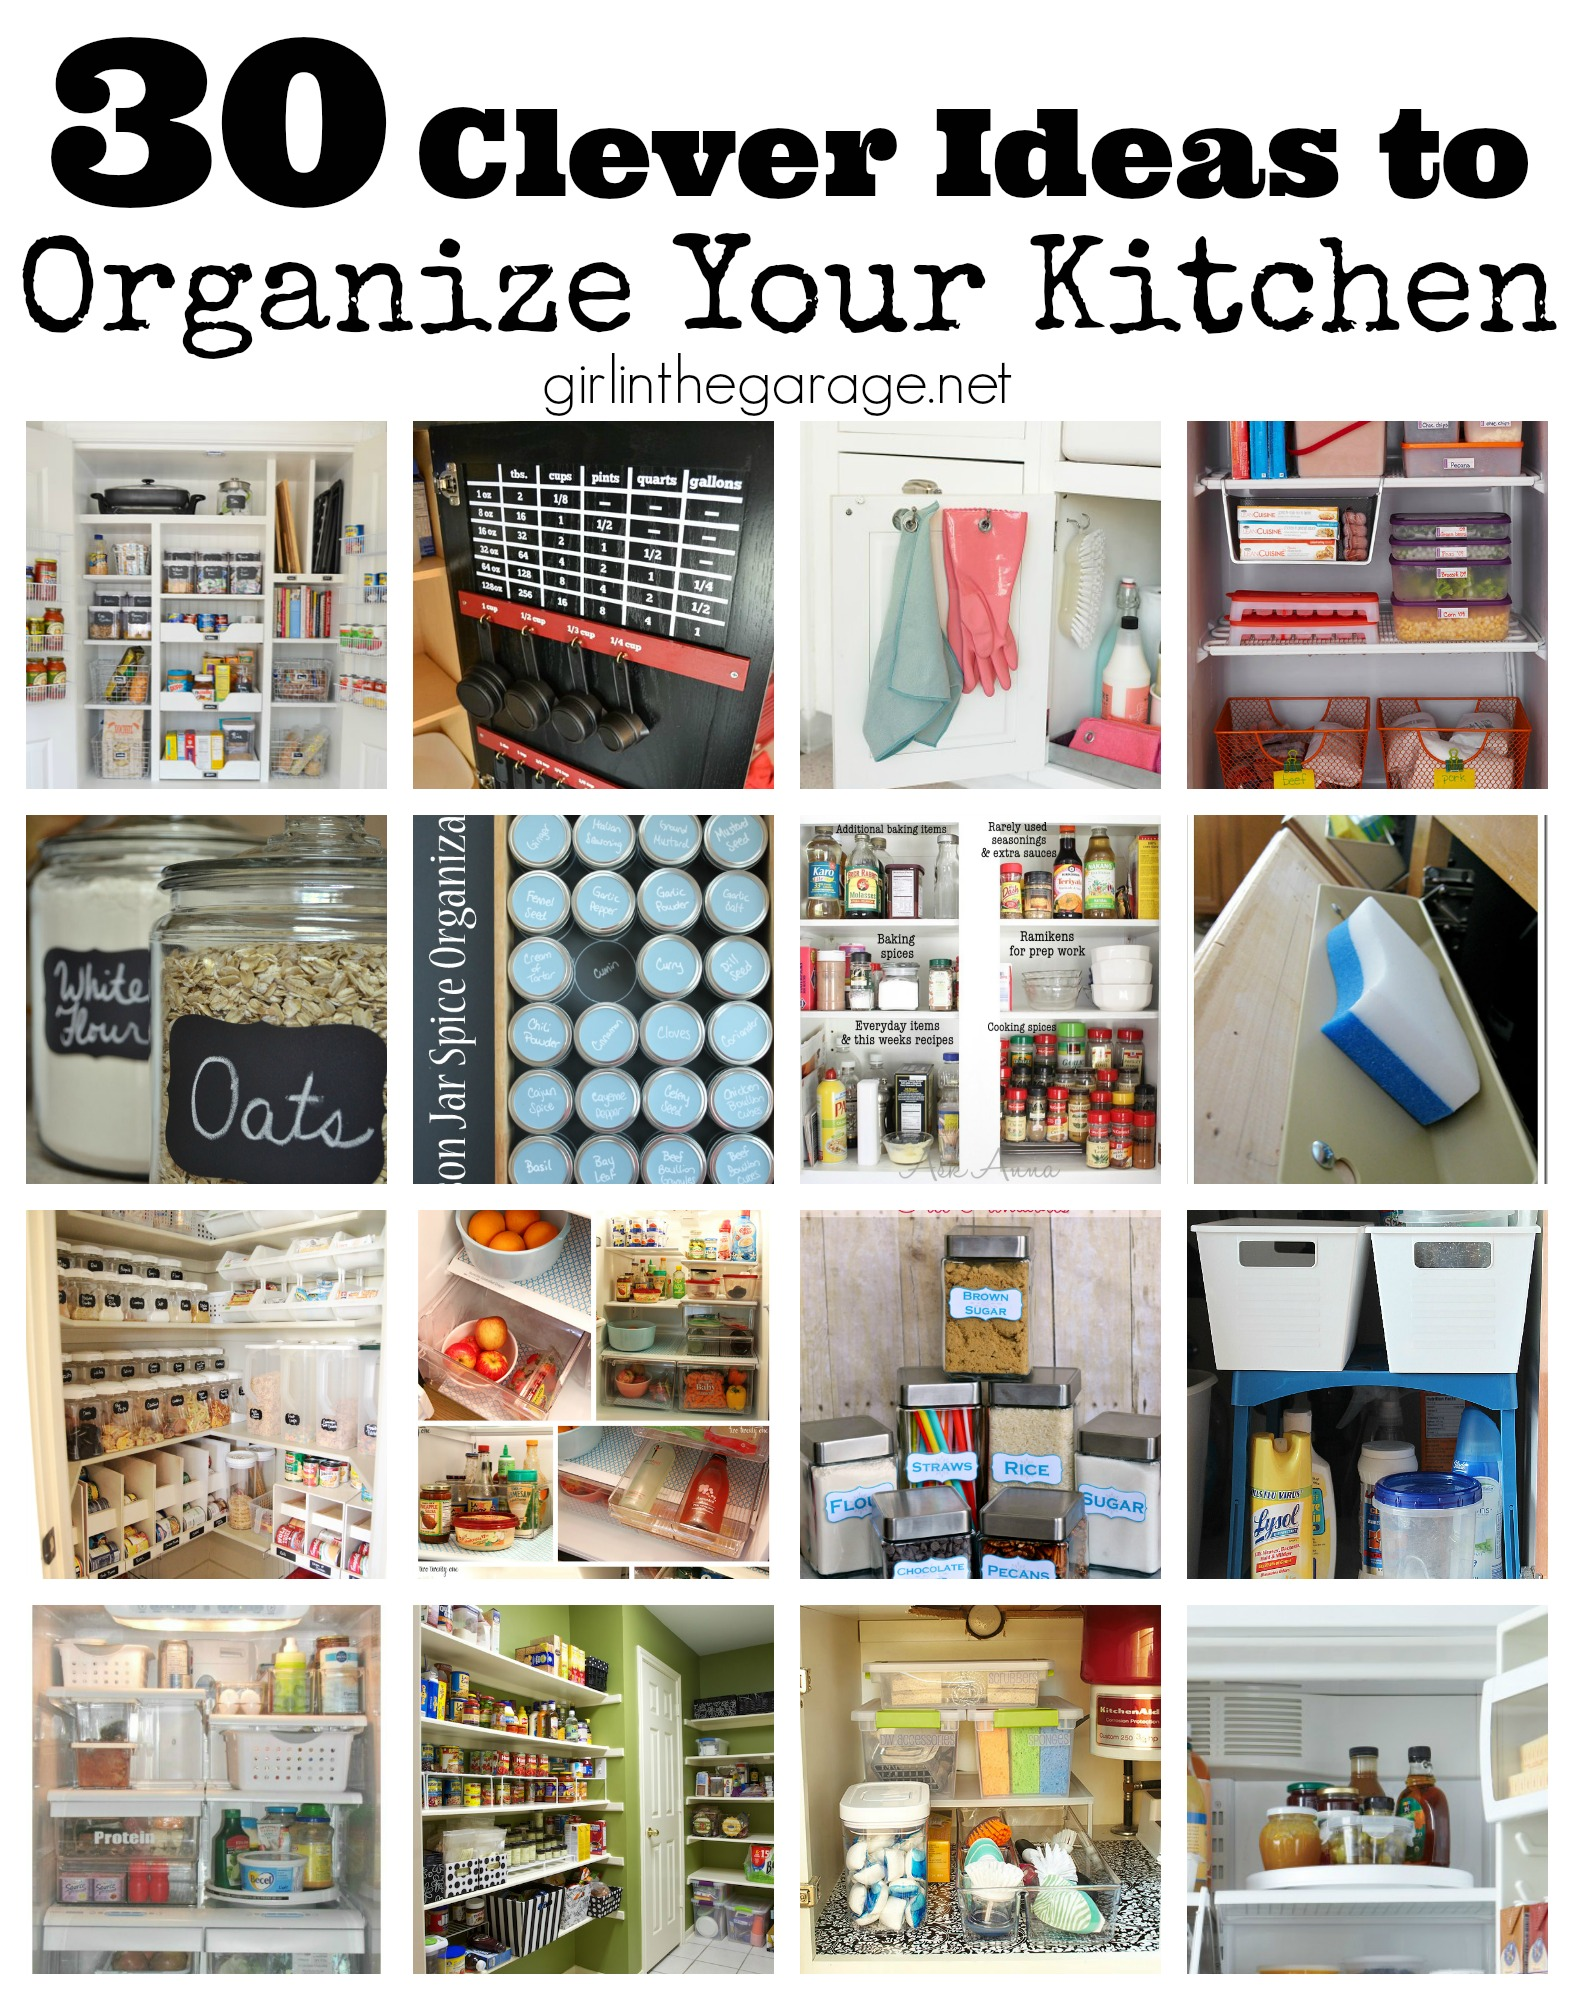 Organize Your Kitchen Cabinets, Pantry, Refrigerator, Freezer, And More  With These Clever